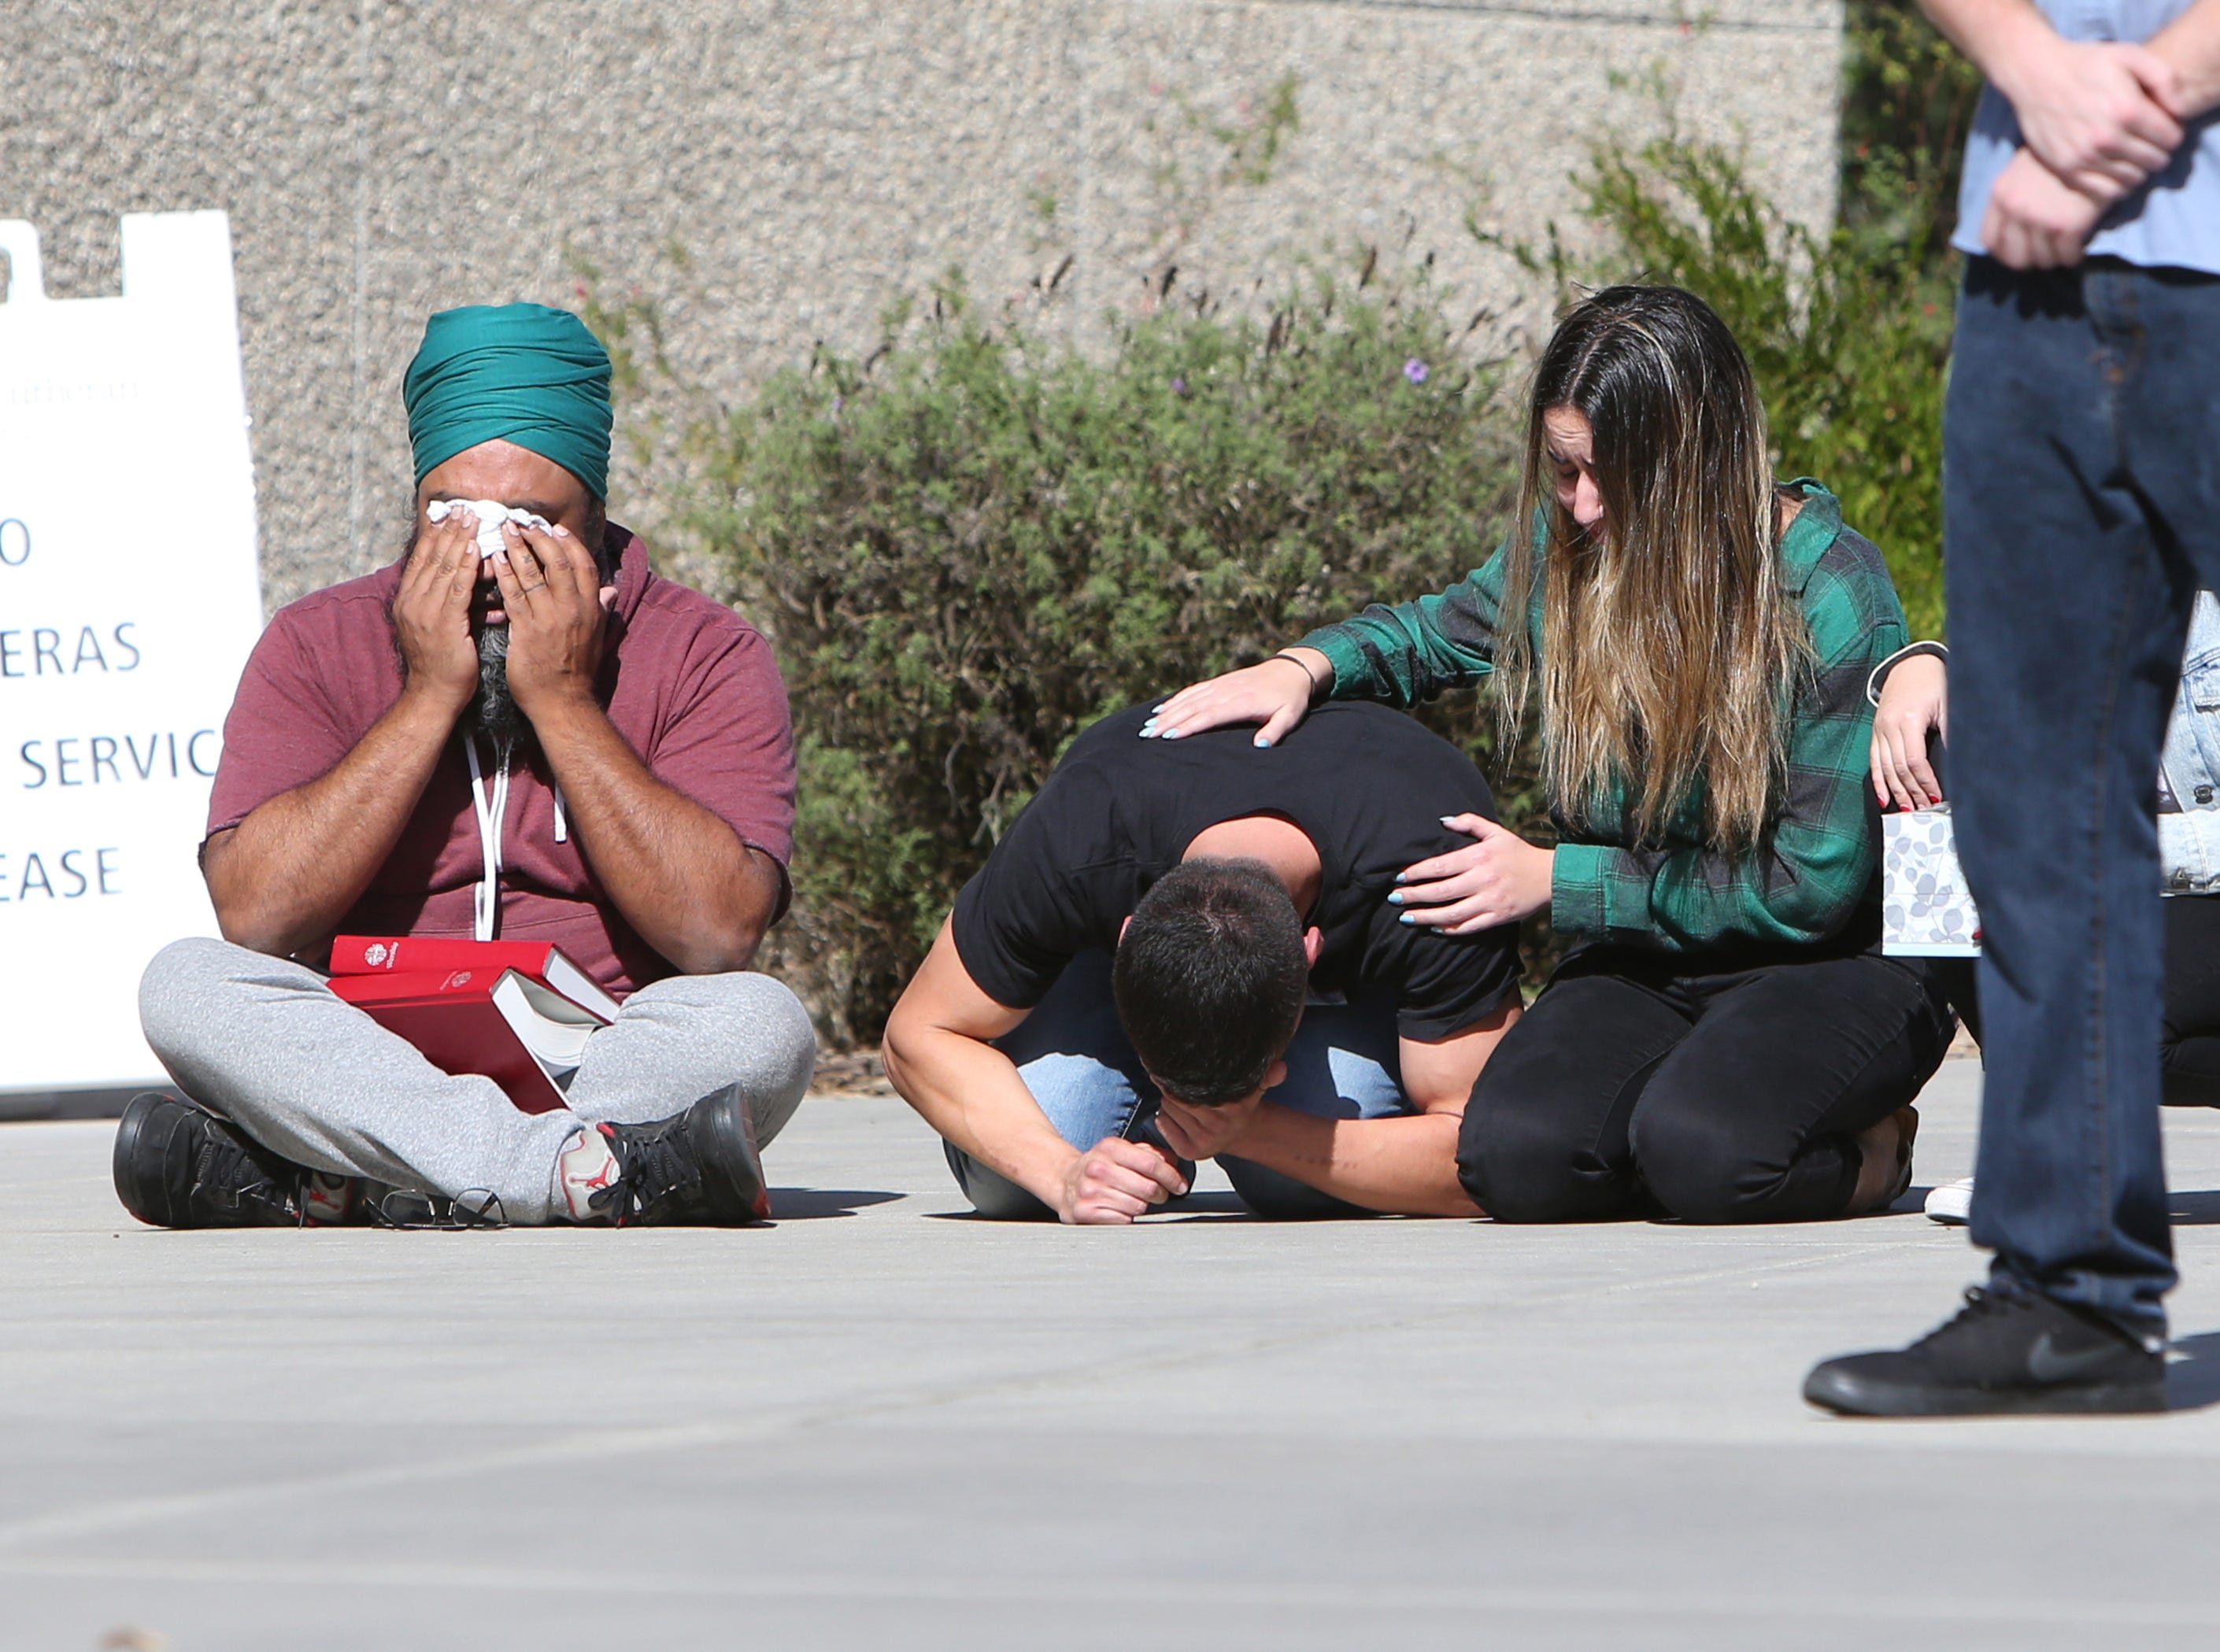 Cal Lutheran's Dr. Rahuldeep Gill (left) wipes away tears as one of the students break down during a service Thursday held for the victims of the Borderline Bar Borderline Bar & Grill shooting.